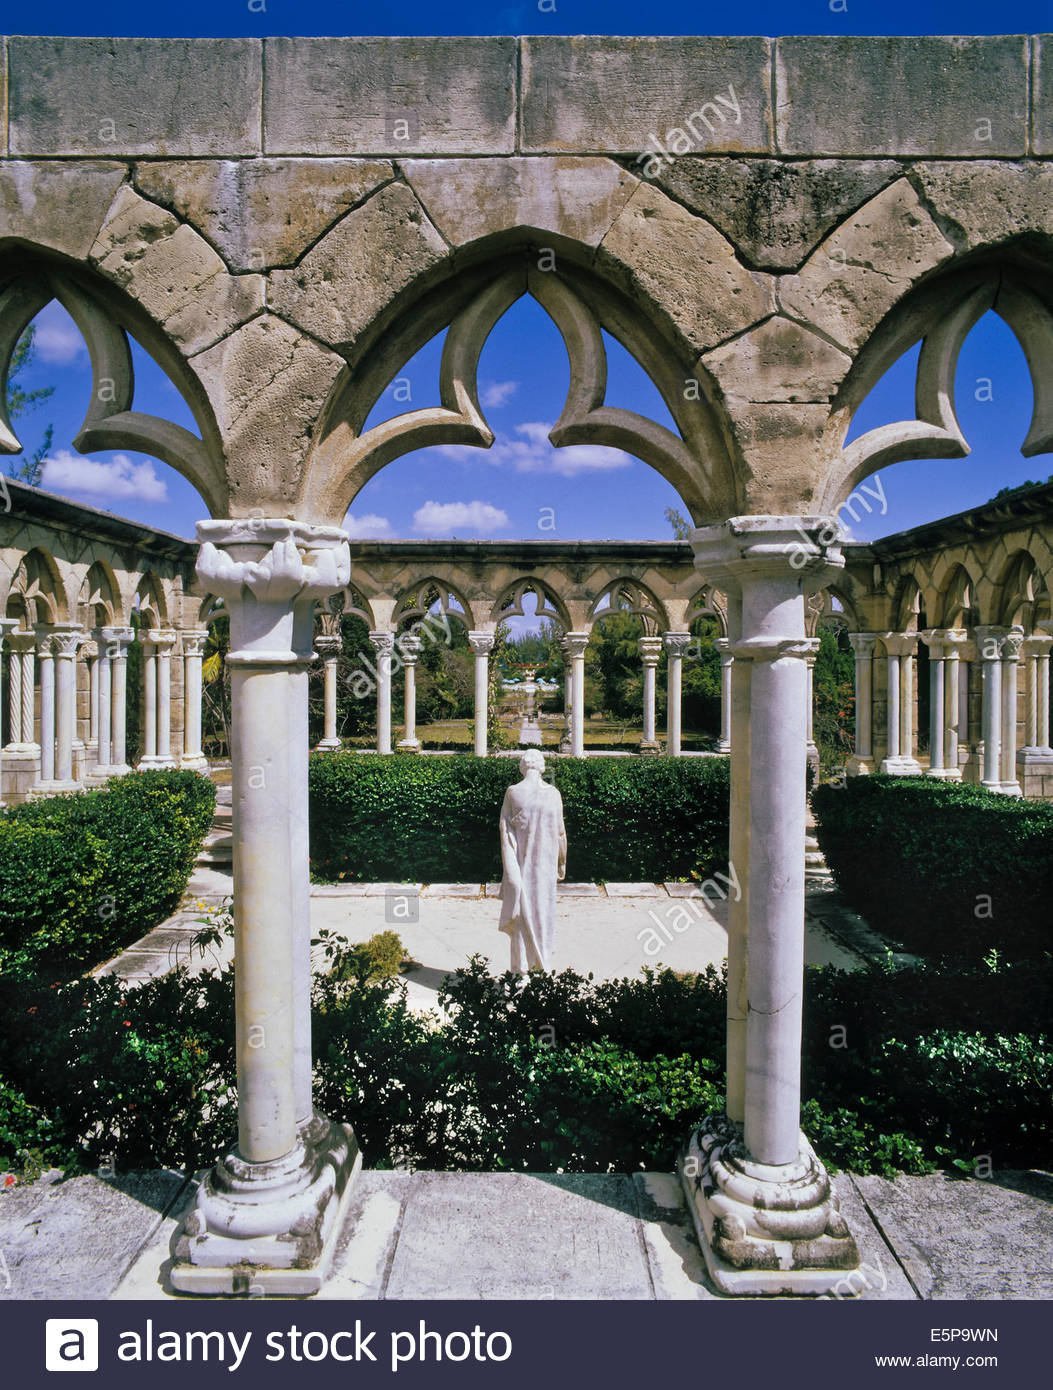 French Cloister and gardens on Paradise Island near Nassau in the Bahamas - Stock Image